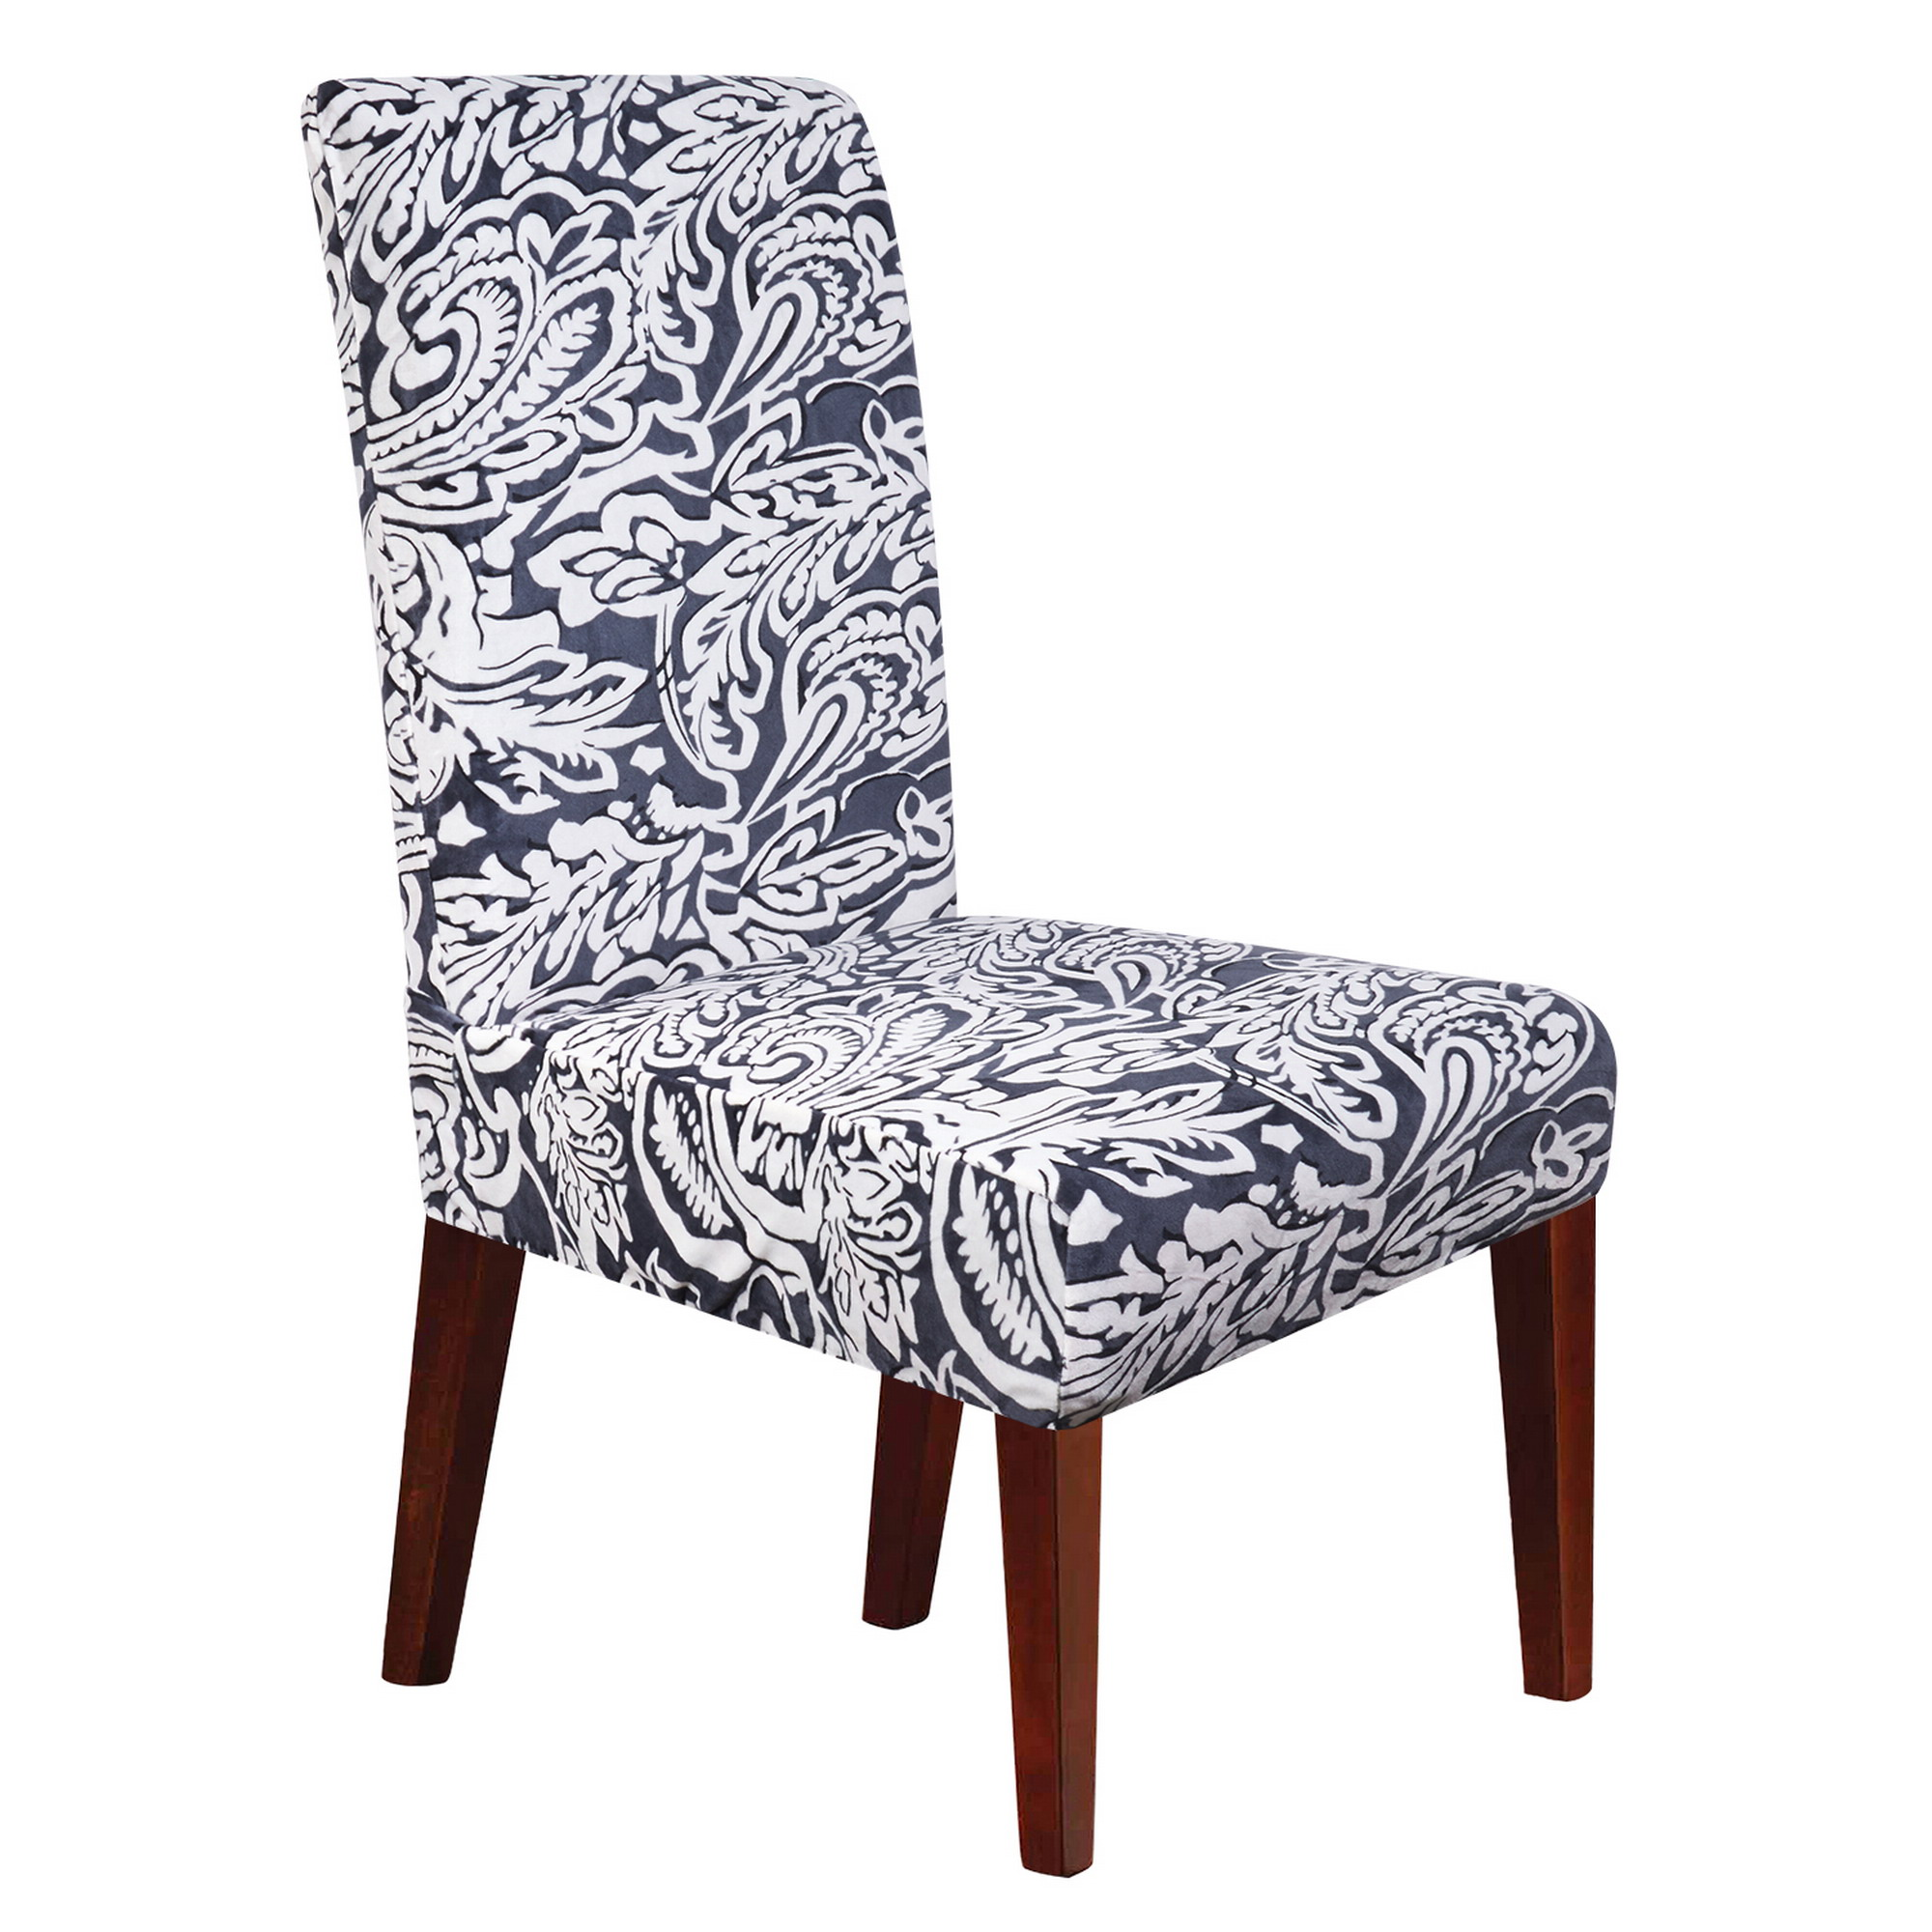 Chair Slipcovers for Dining Room Soft Spandex Stretch Removable Washable Banquet Home Party Hotel Wedding Seat Stool Protector Short Dining Room Chair Covers(GY3)